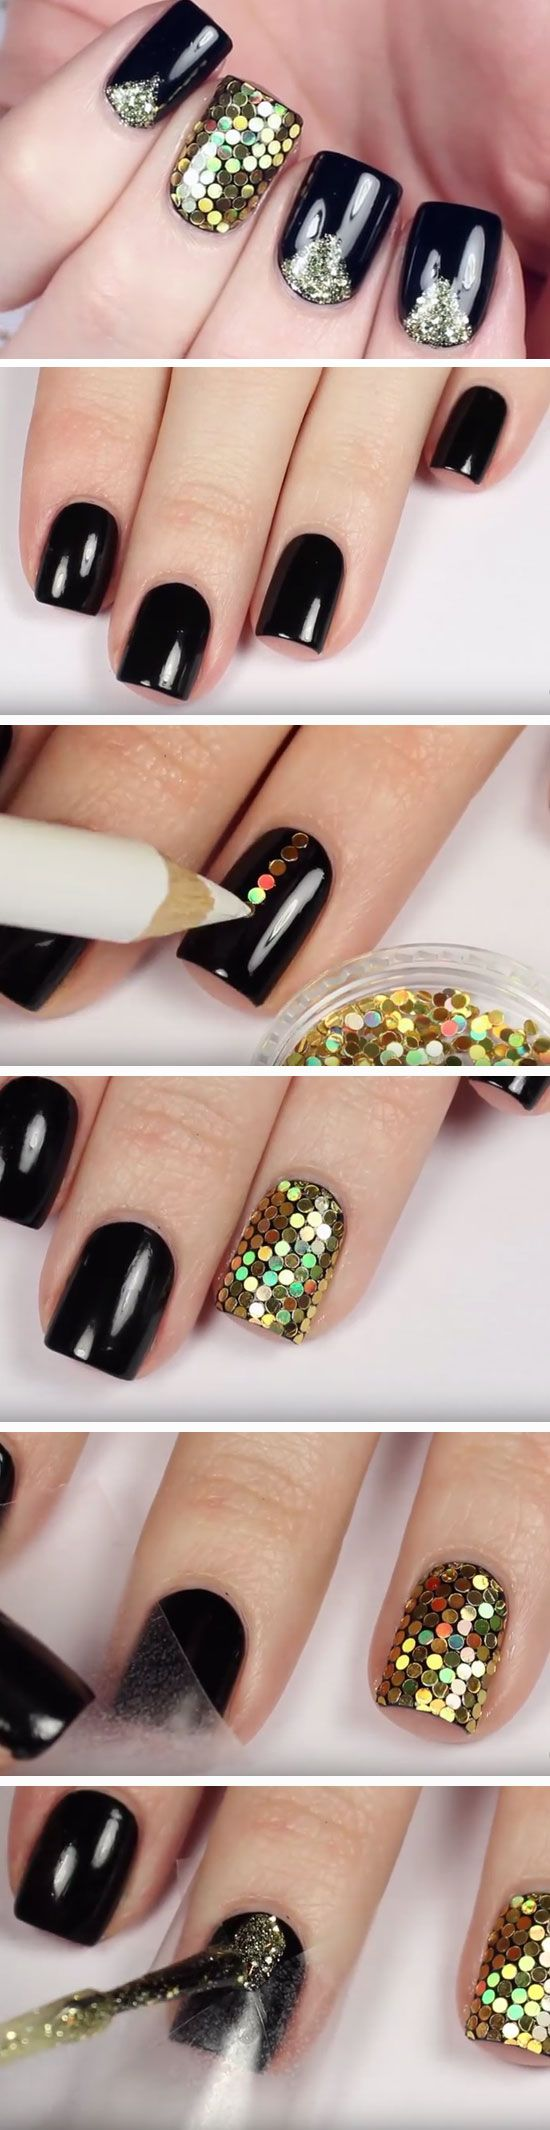 Black & Gold Glitter Placement   Click Pic for 20 DIY New Years Eve Nail Art Ideas for Teens 2016   Quick and Easy Nail Designs for Special Occasions